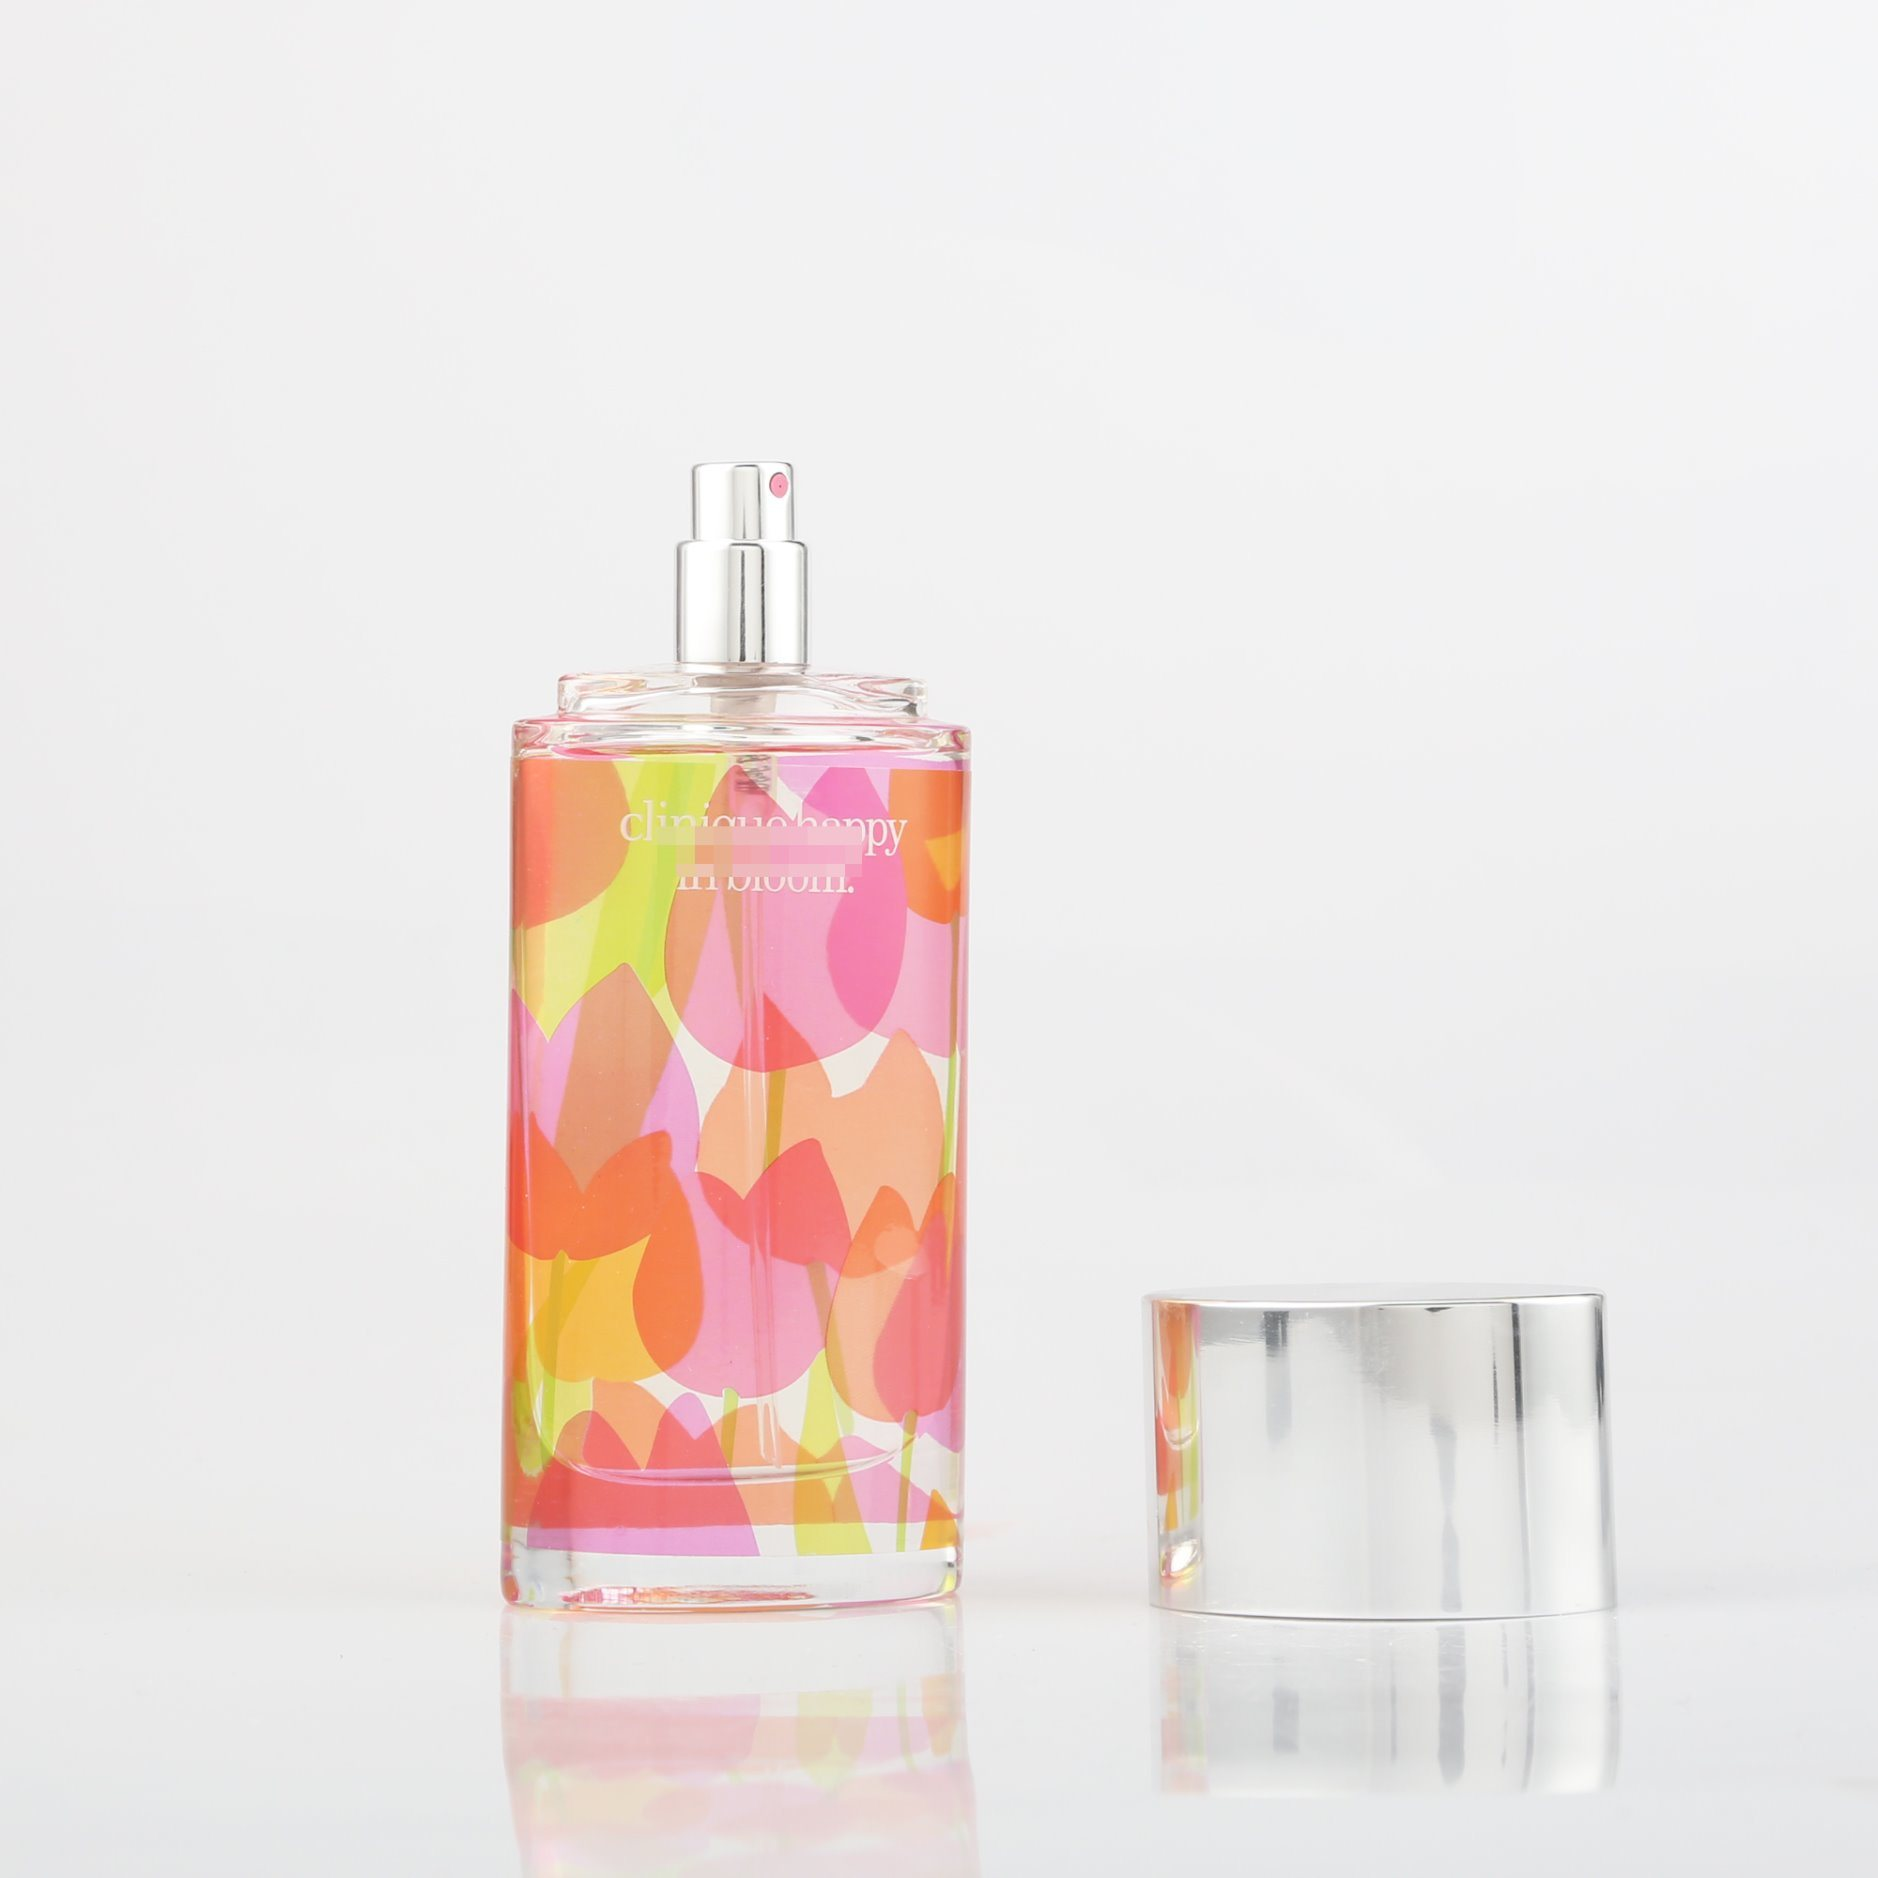 Hot Selling Glass Perfume Bottle with Original Spray for Women